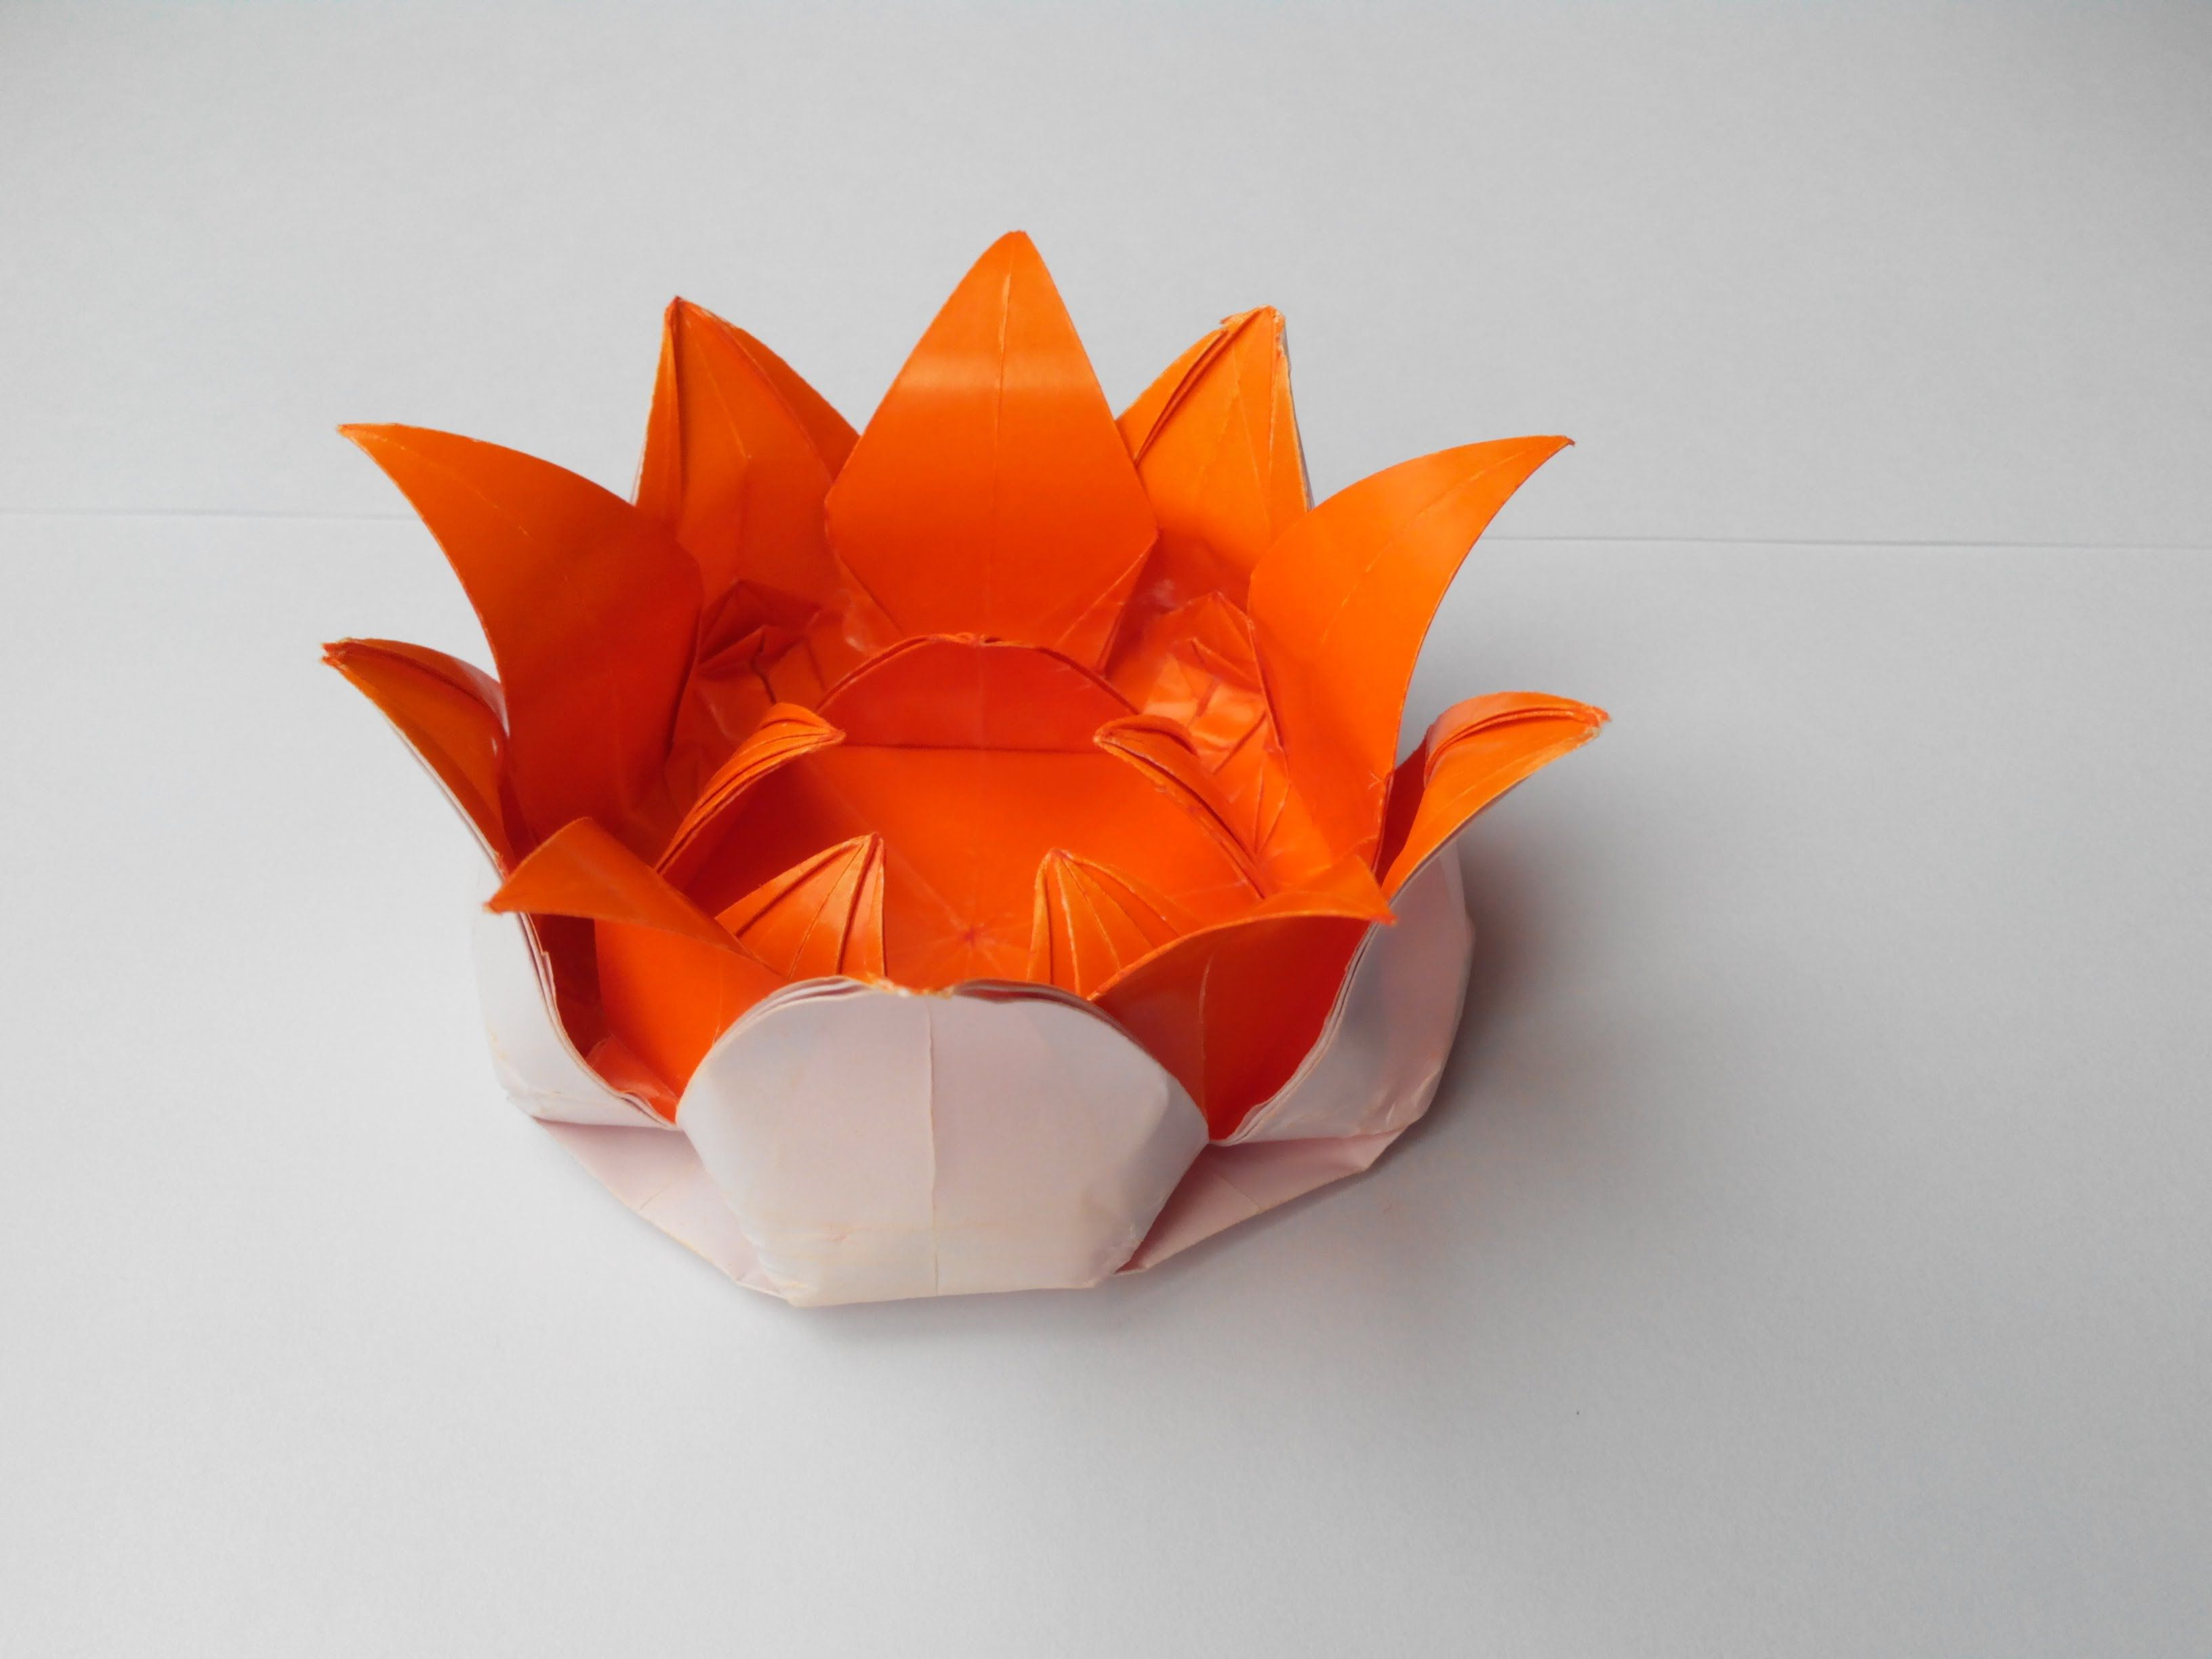 Pin By Sheri Izen On Origami Flowers Pinterest Origami Quilling